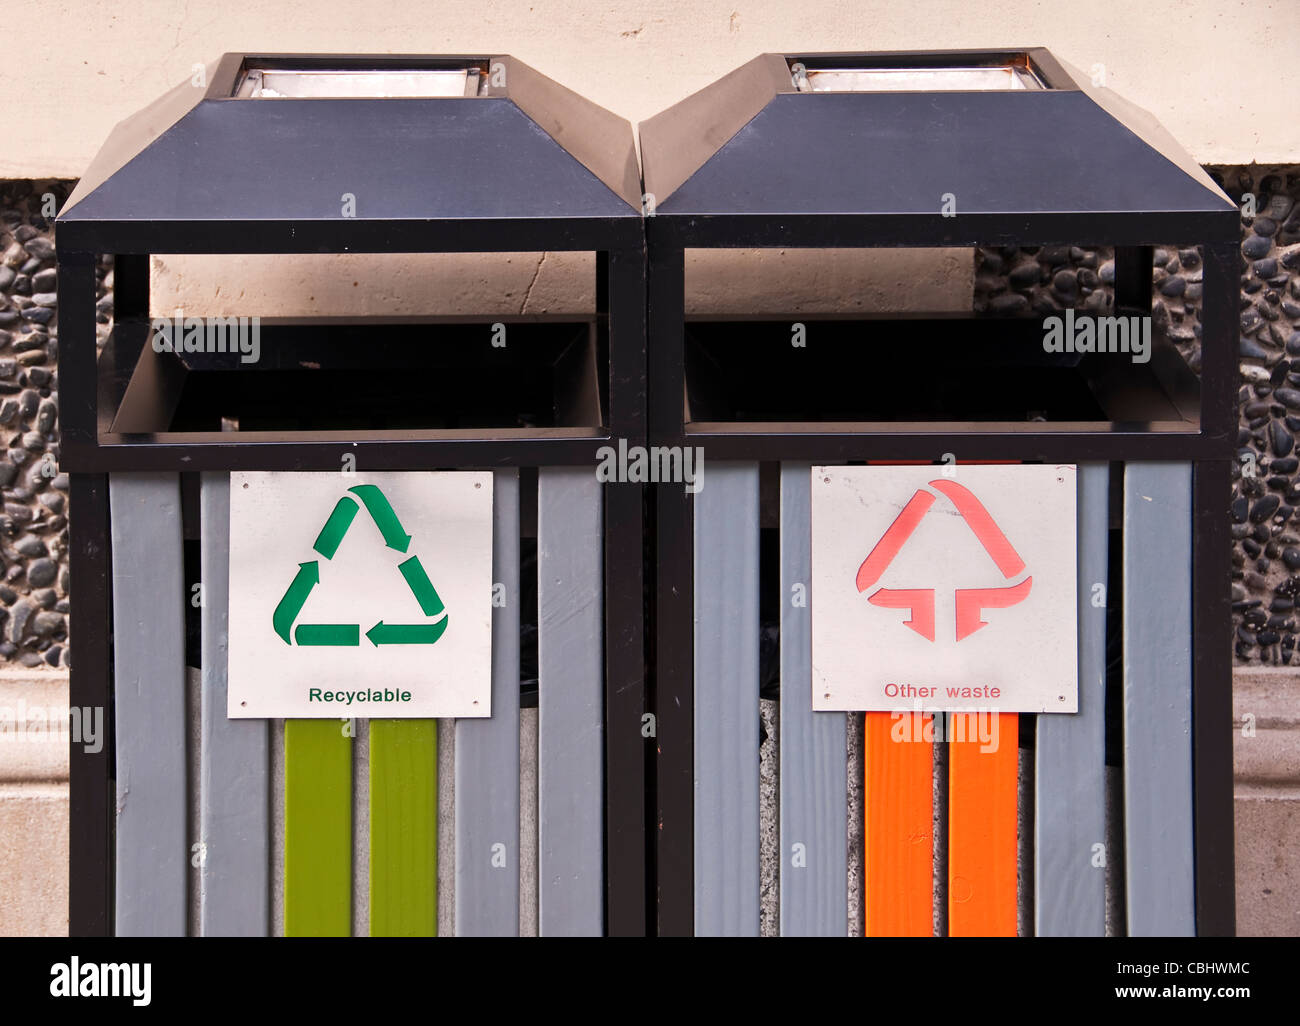 Two public garbage boxes - recyclable, other waste - Stock Image